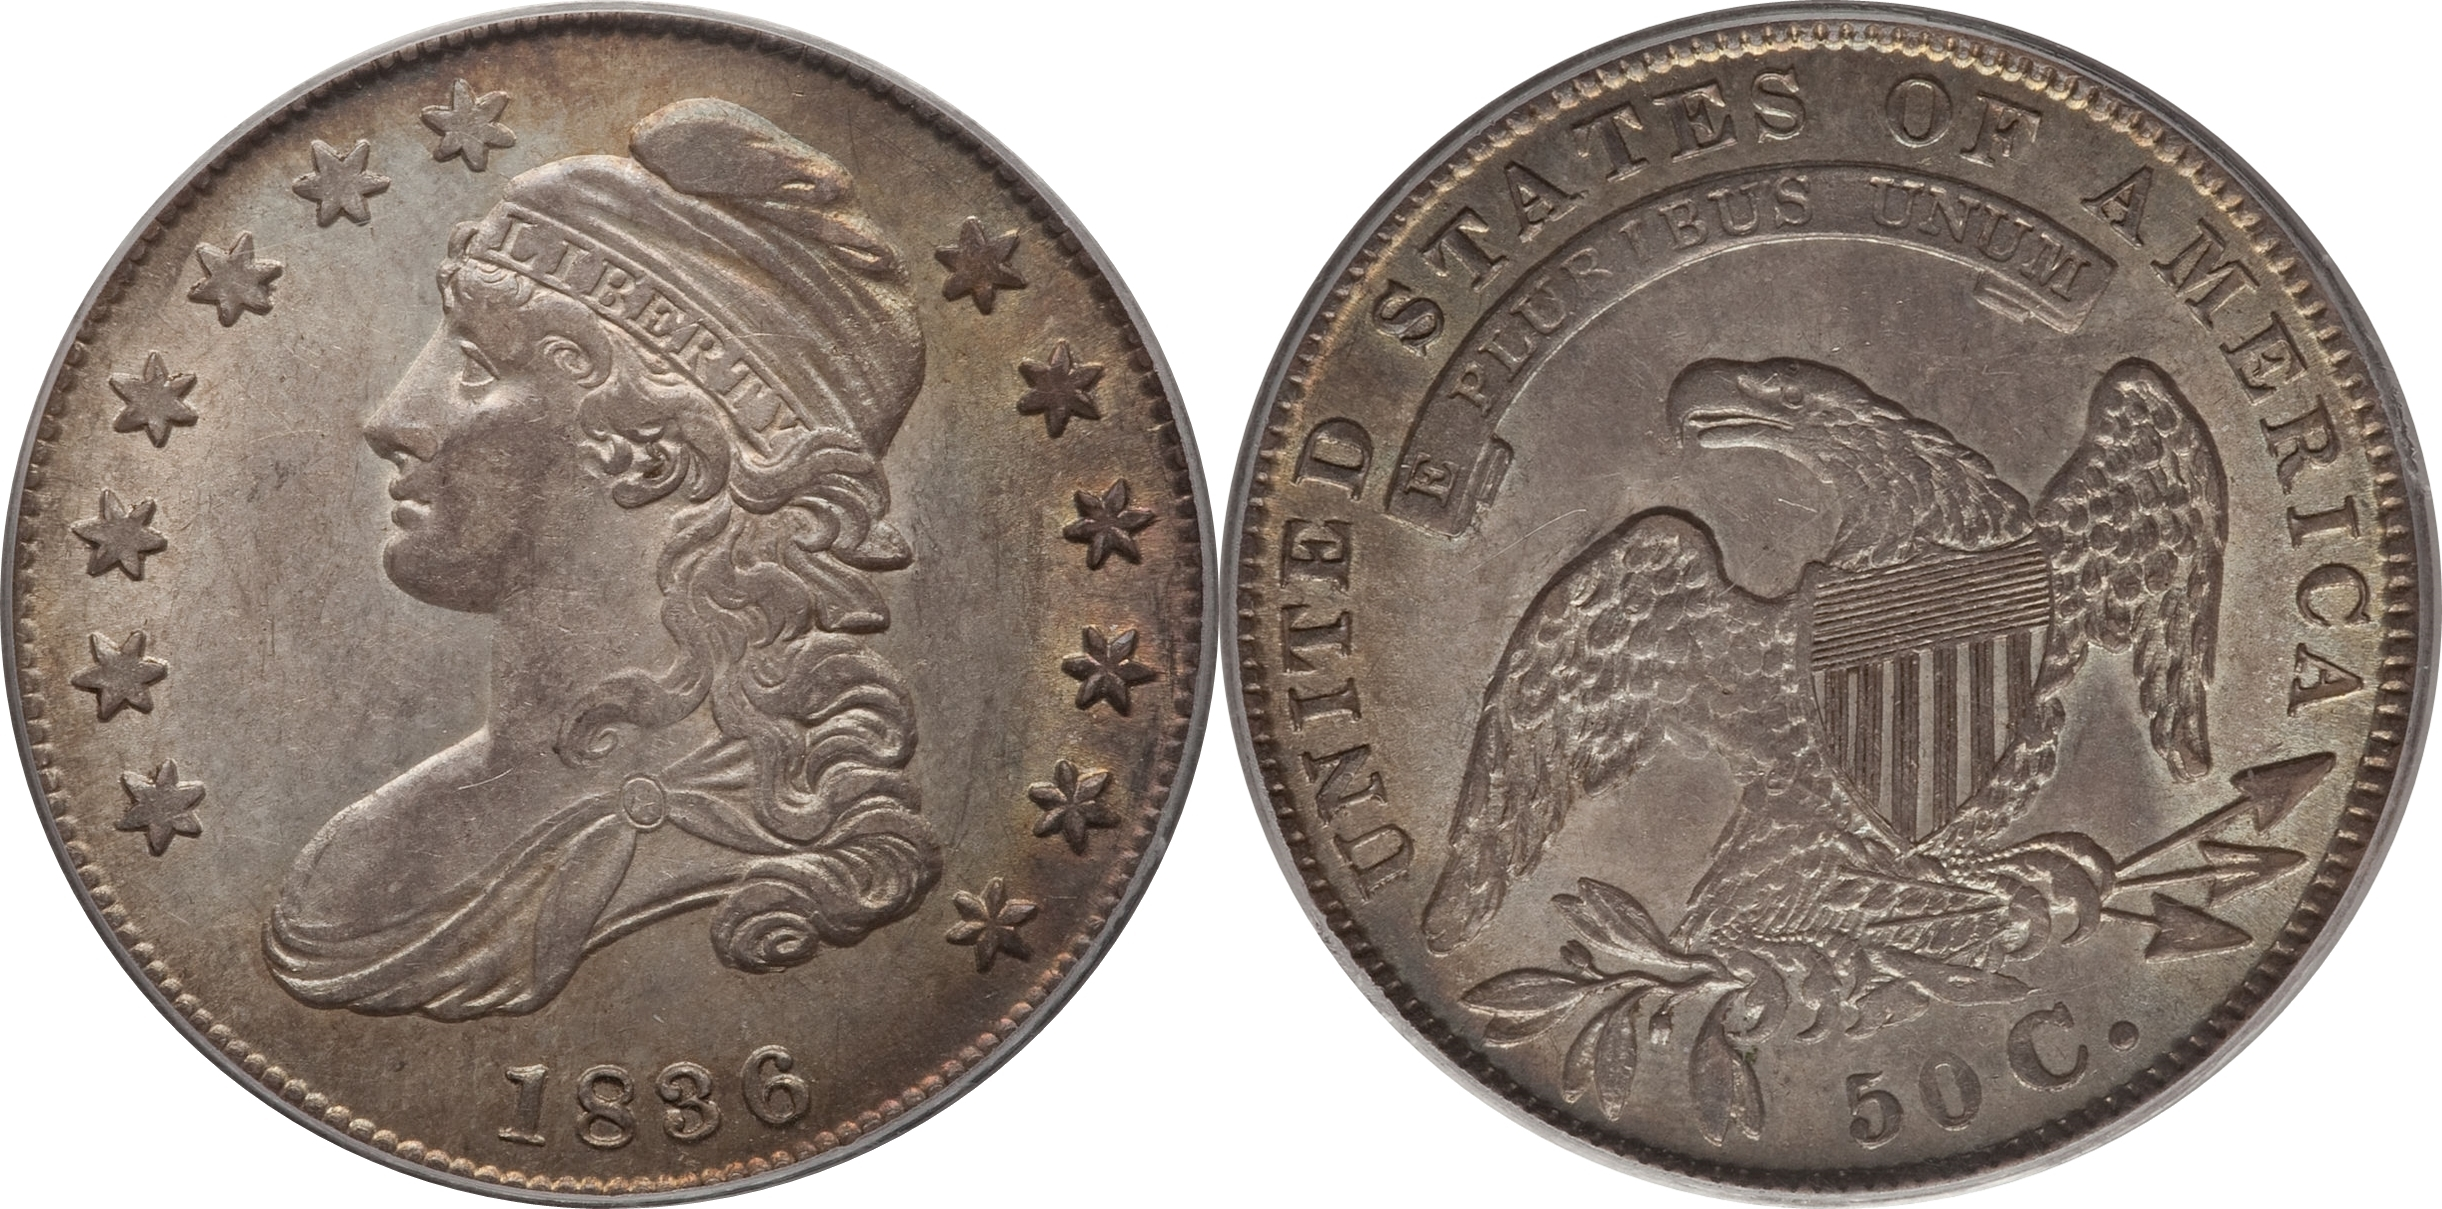 1836 Capped Bust Half Dollar Variety Images Overton